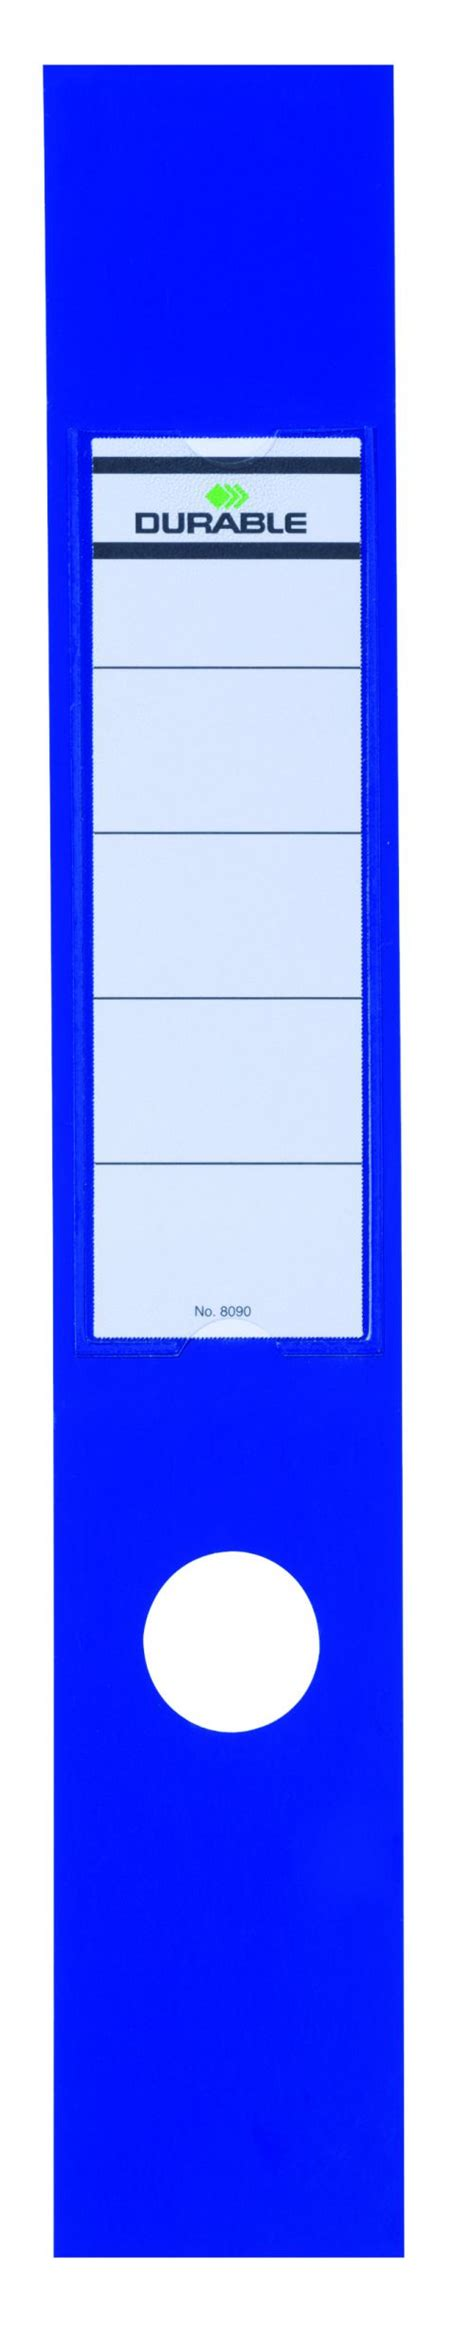 Ordofix Spine Label Template durable blue ordofix file spine label pack of 10 8090 06